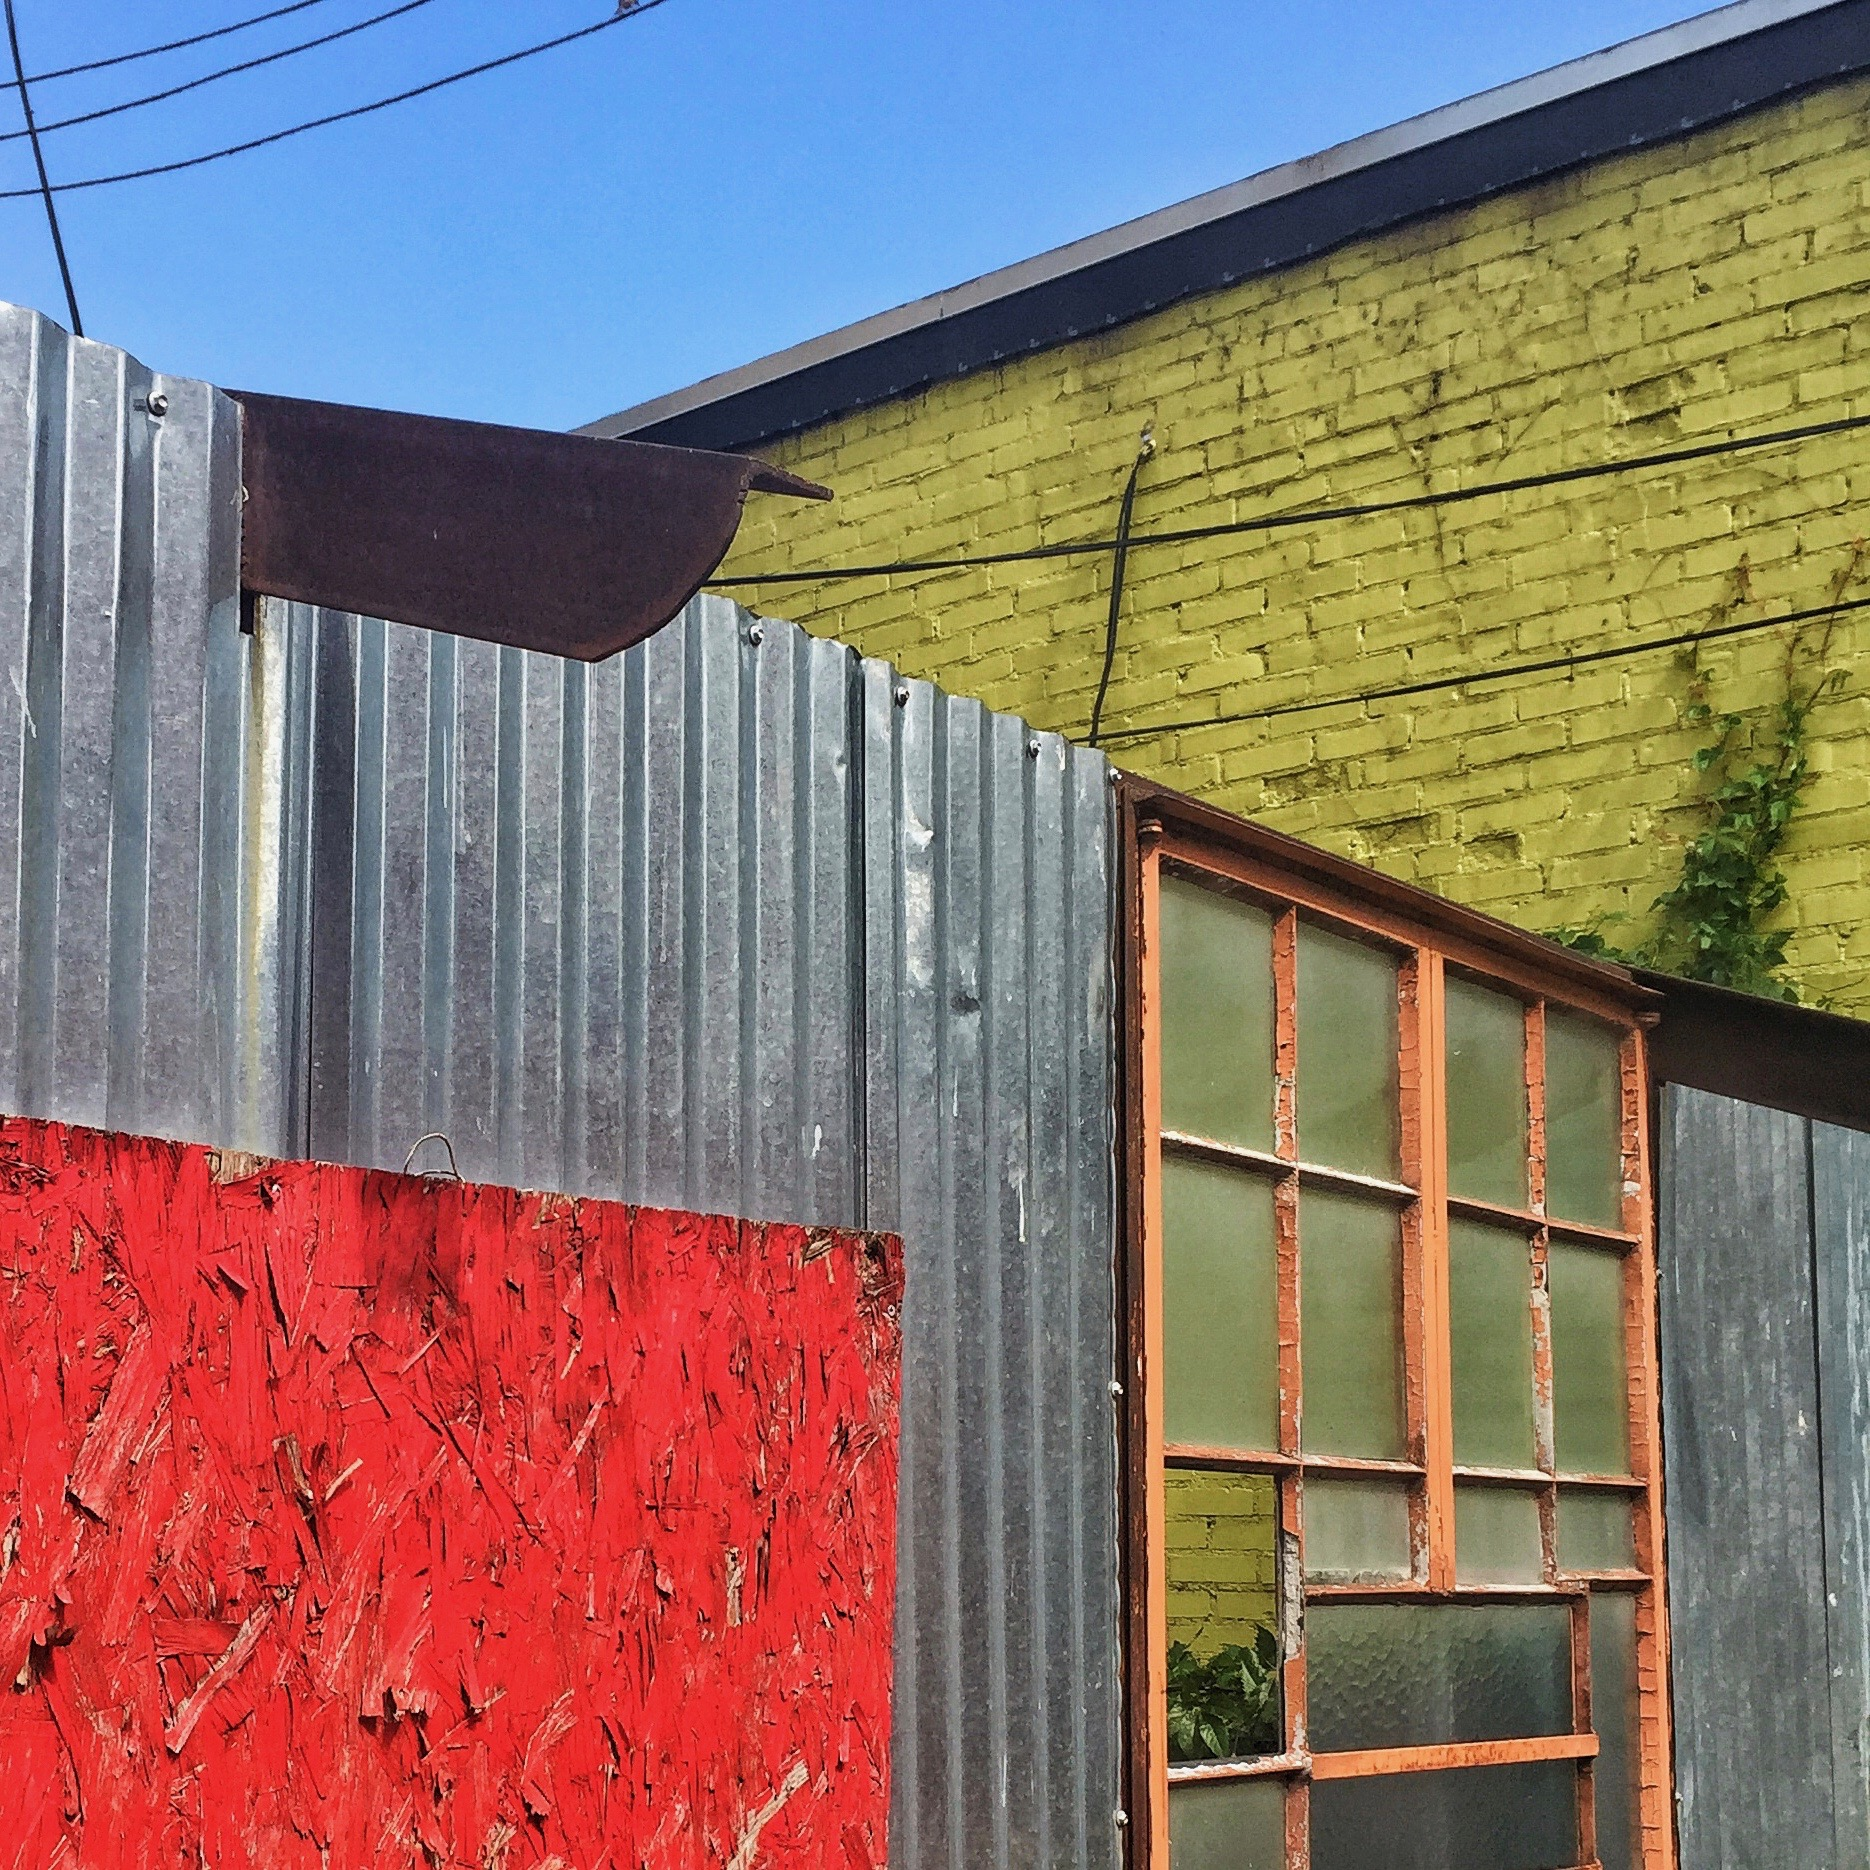 Contrasting Colors, Alleyway - Tulsa, OK